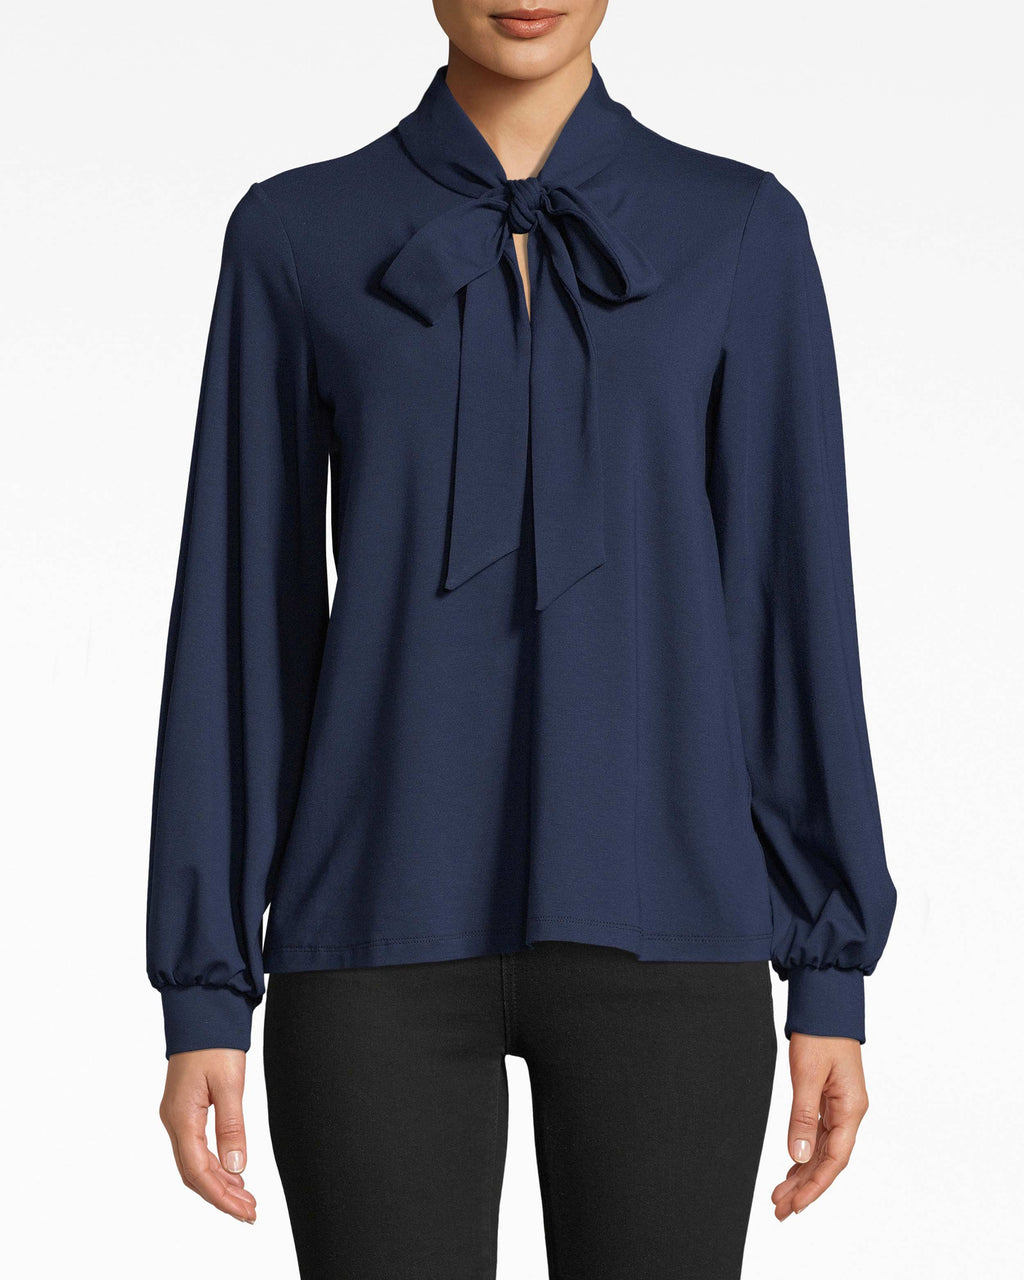 AS10212 - JERSEY STOCK TIE TOP - tops - blouses - Tied to the office? Channel your inner boss with this long sleeve jersey top. The collared neckline streamlines the silhouette so the tie closure can really stand out.